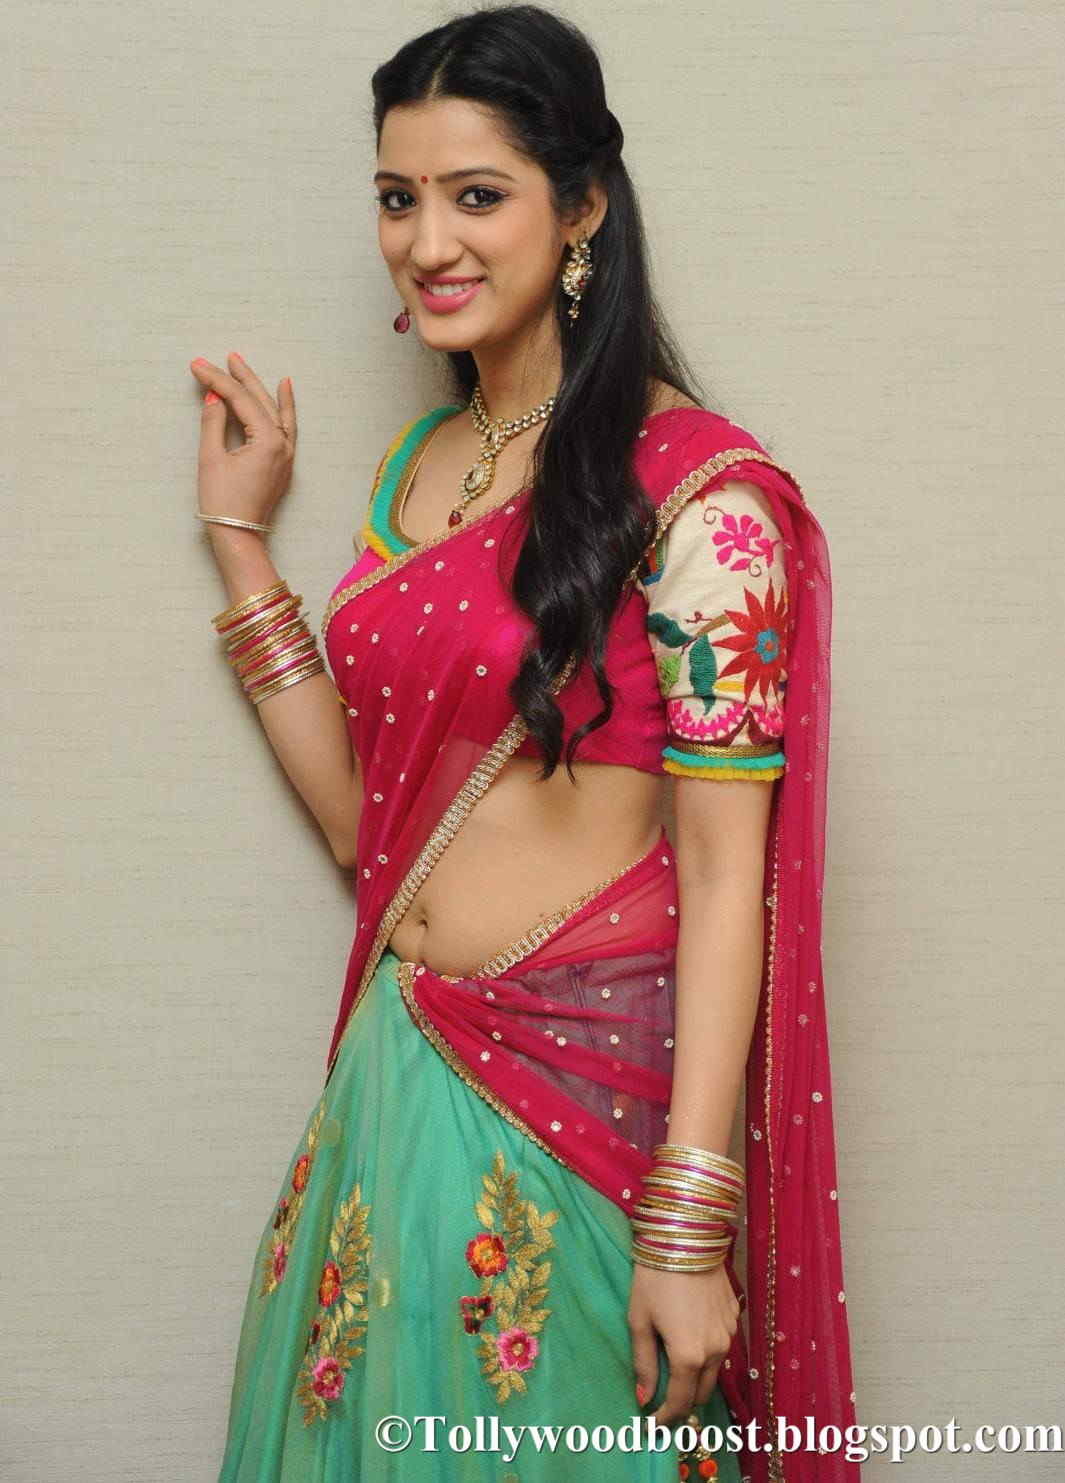 Beautiful Telugu Girl Richa Panai Fashion Walk Stills In Red Lehenga Voni